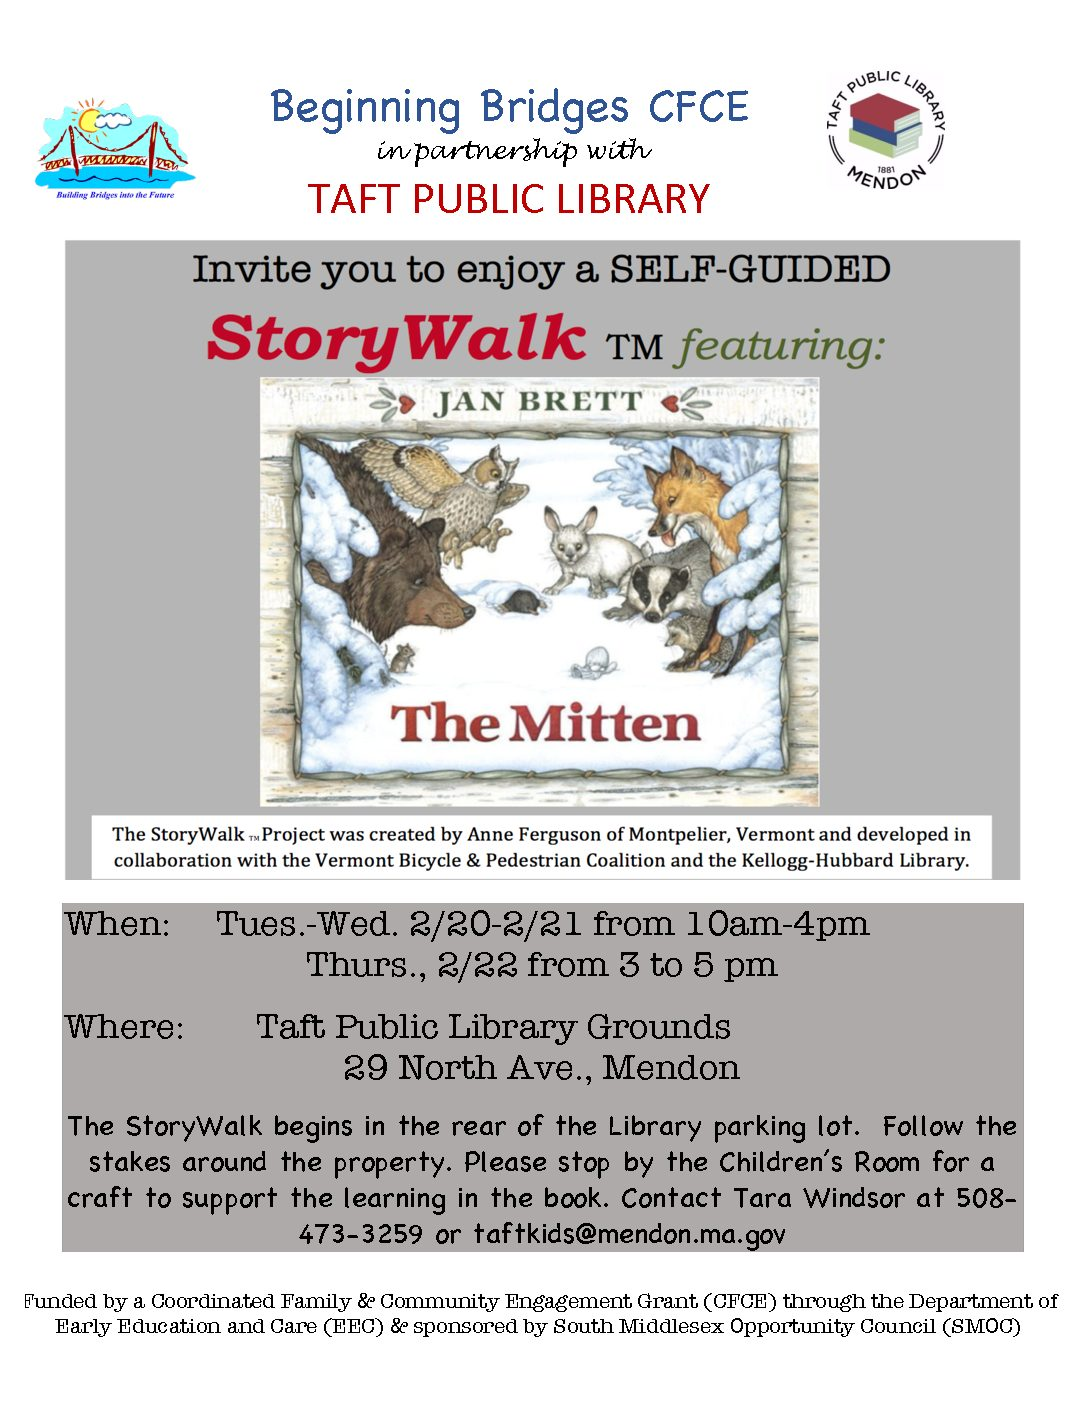 THE MITTEN StoryWalk Click on link for the flyer.